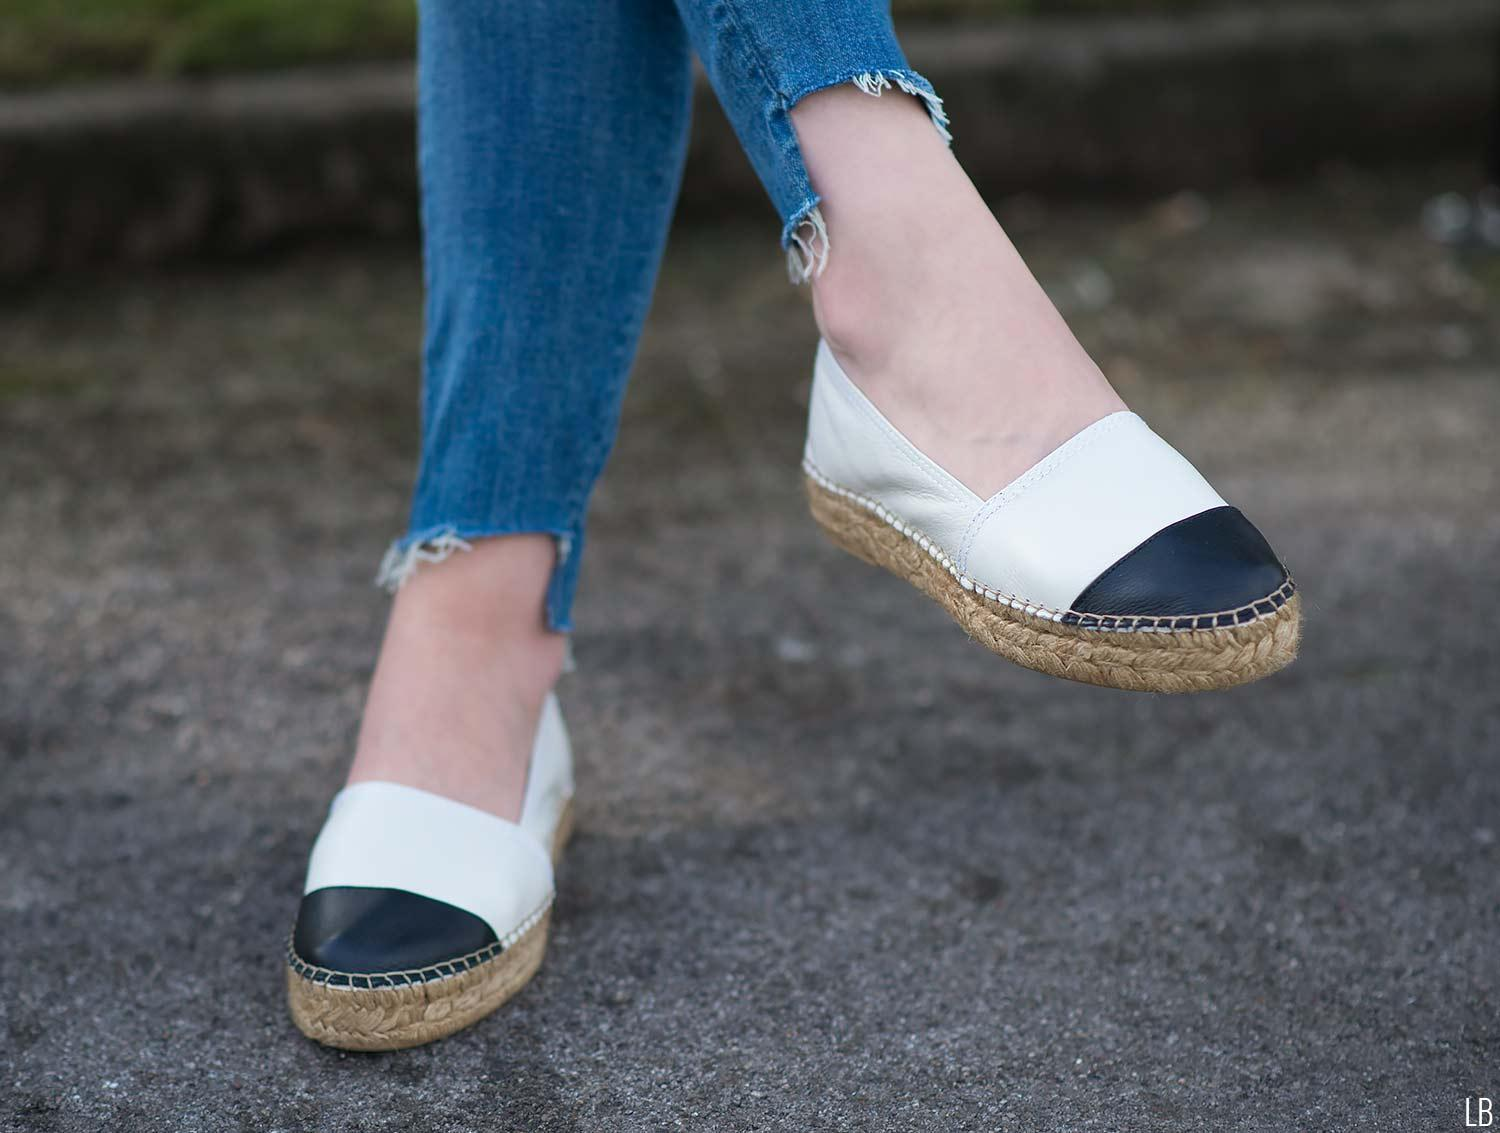 kurt-geiger-espadrilles-white-black-chanel